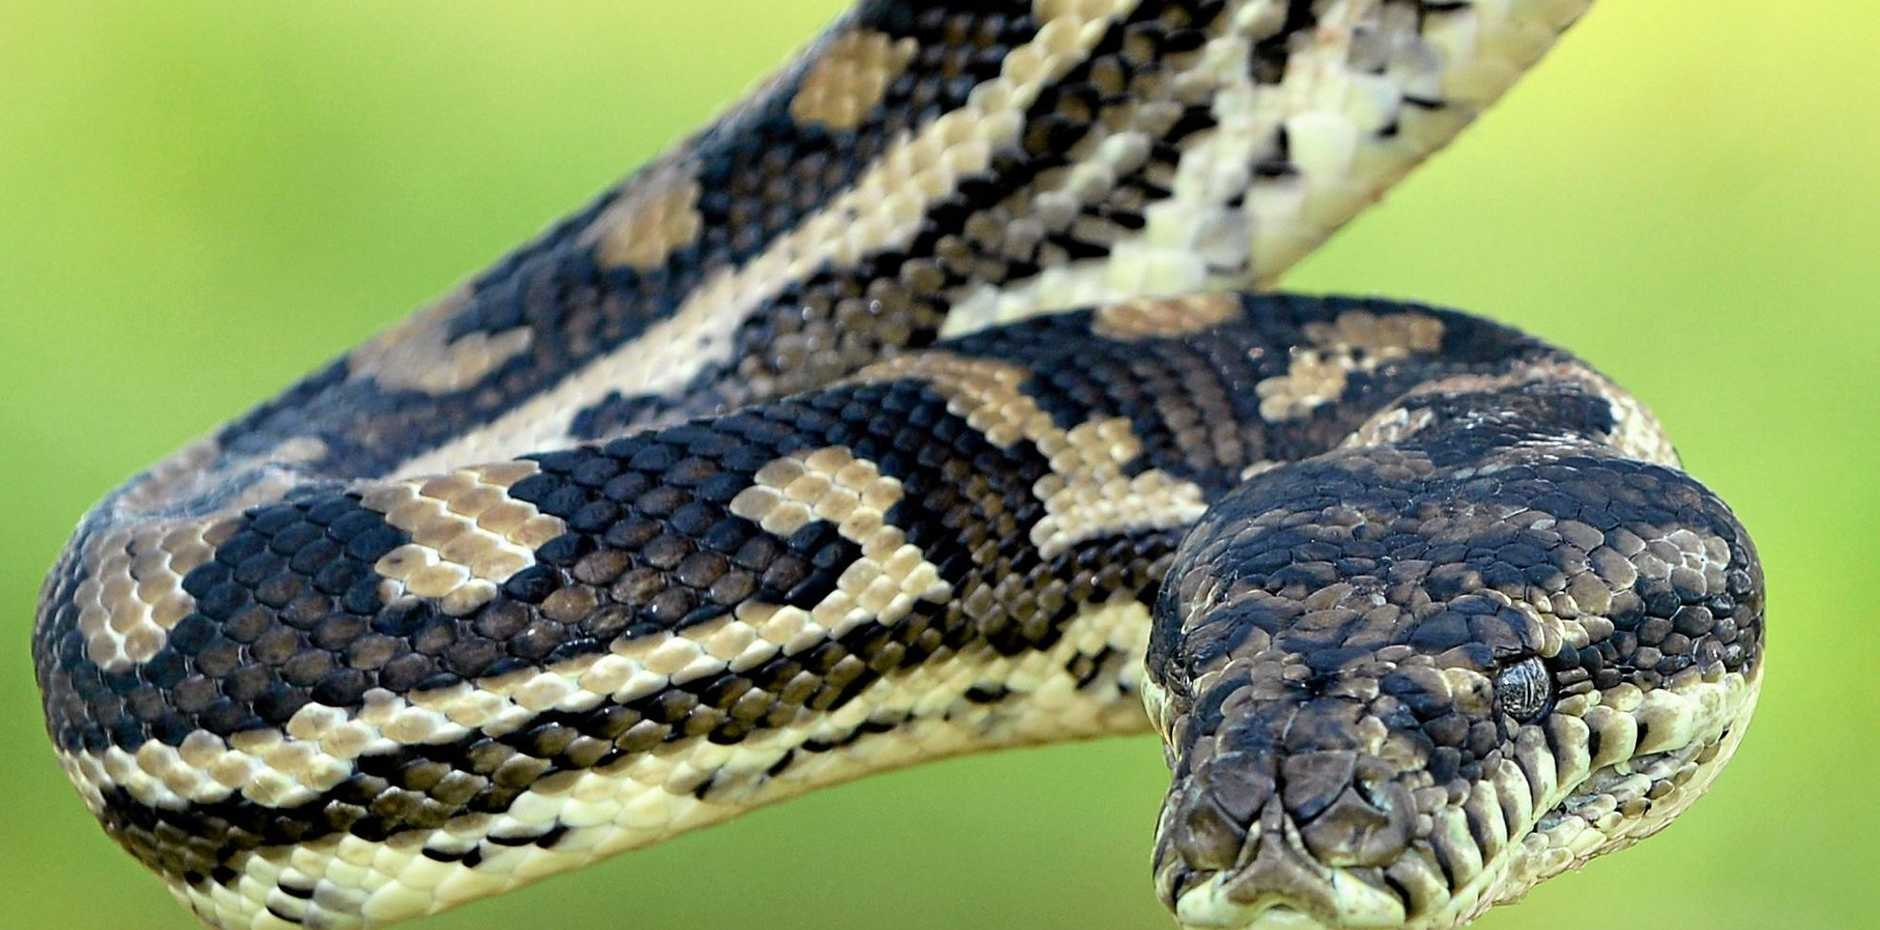 Hospital figures show 32 people have been bitten by snakes in Central Queensland this year.